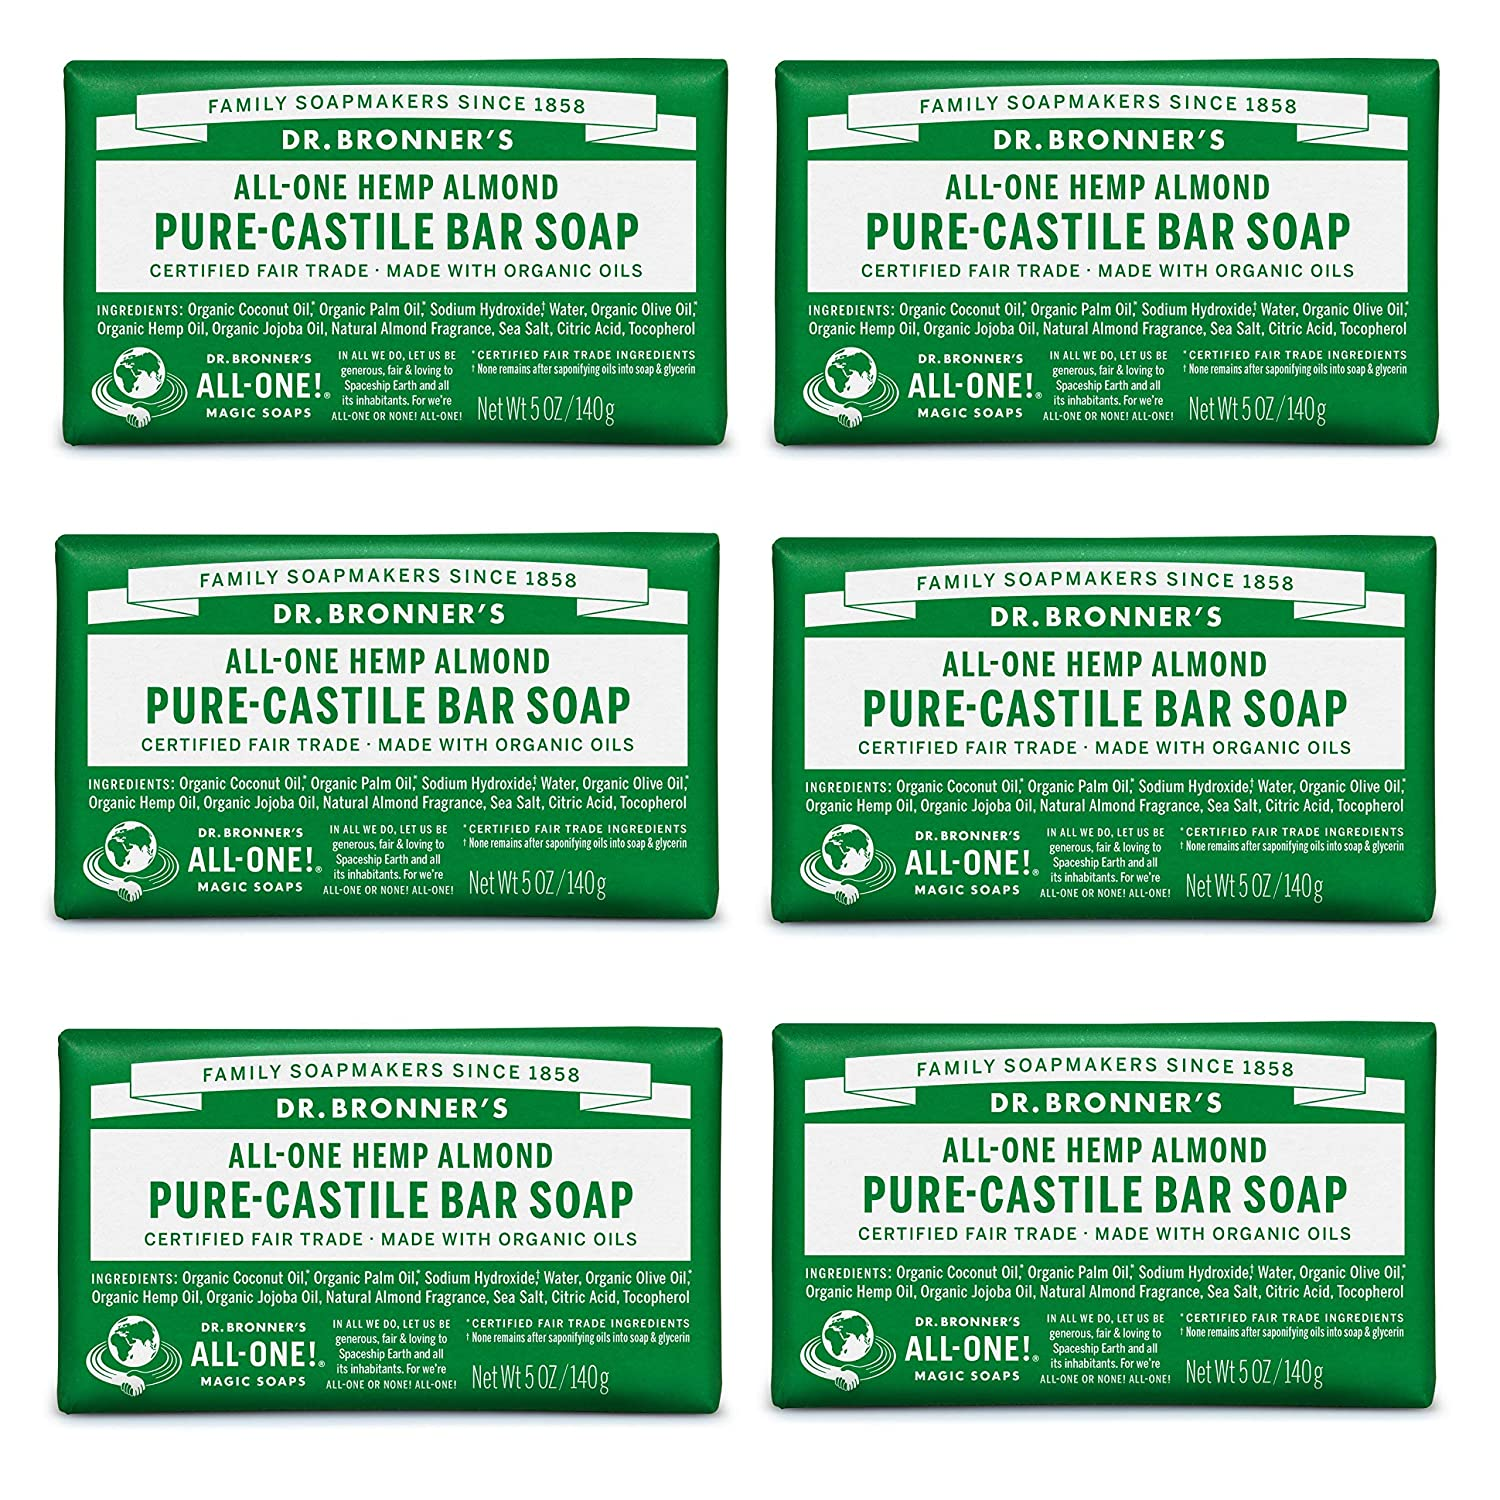 Dr. Bronner's - Pure-Castile Bar Soap (Almond, 5 oz, 6-Pack) - Made with Organic Oils, For Face, Body & Hair, Gentle & Moisturizing, Biodegradable, Vegan, Cruelty-free, Non-GMO